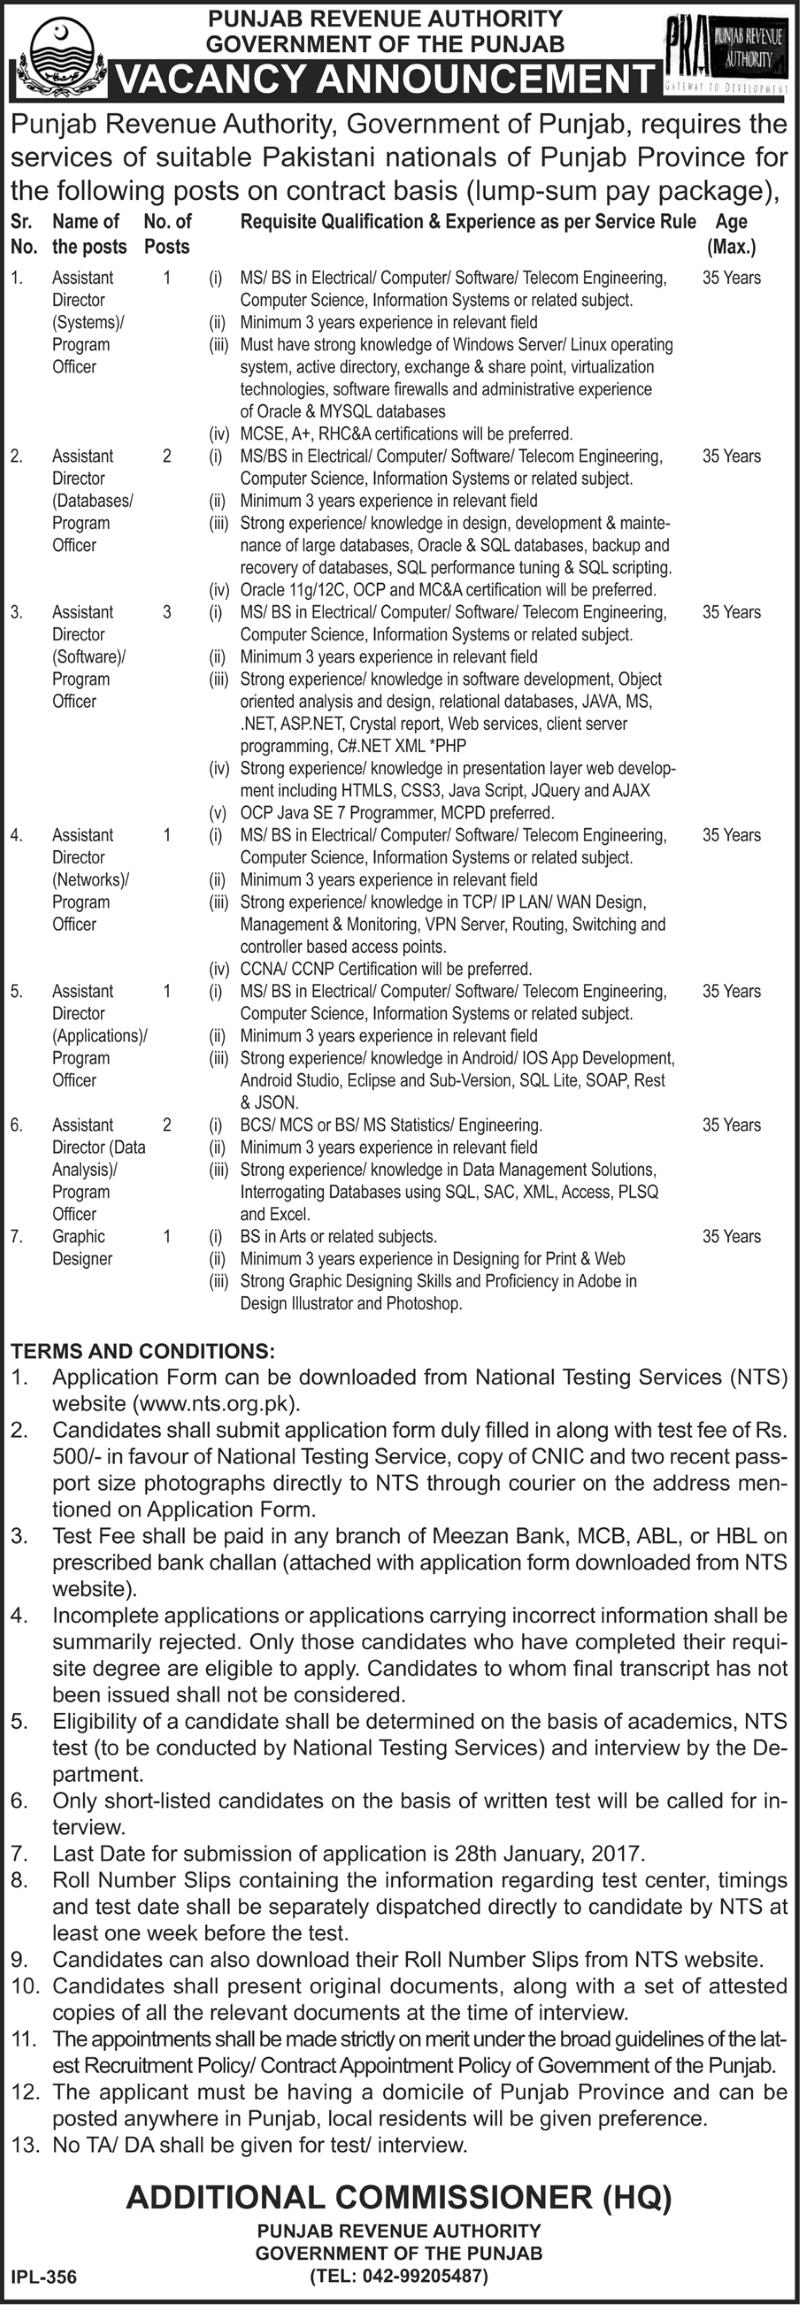 Punjab Revenue Authority NTS Jobs Download Application Form Last Date Eligibility